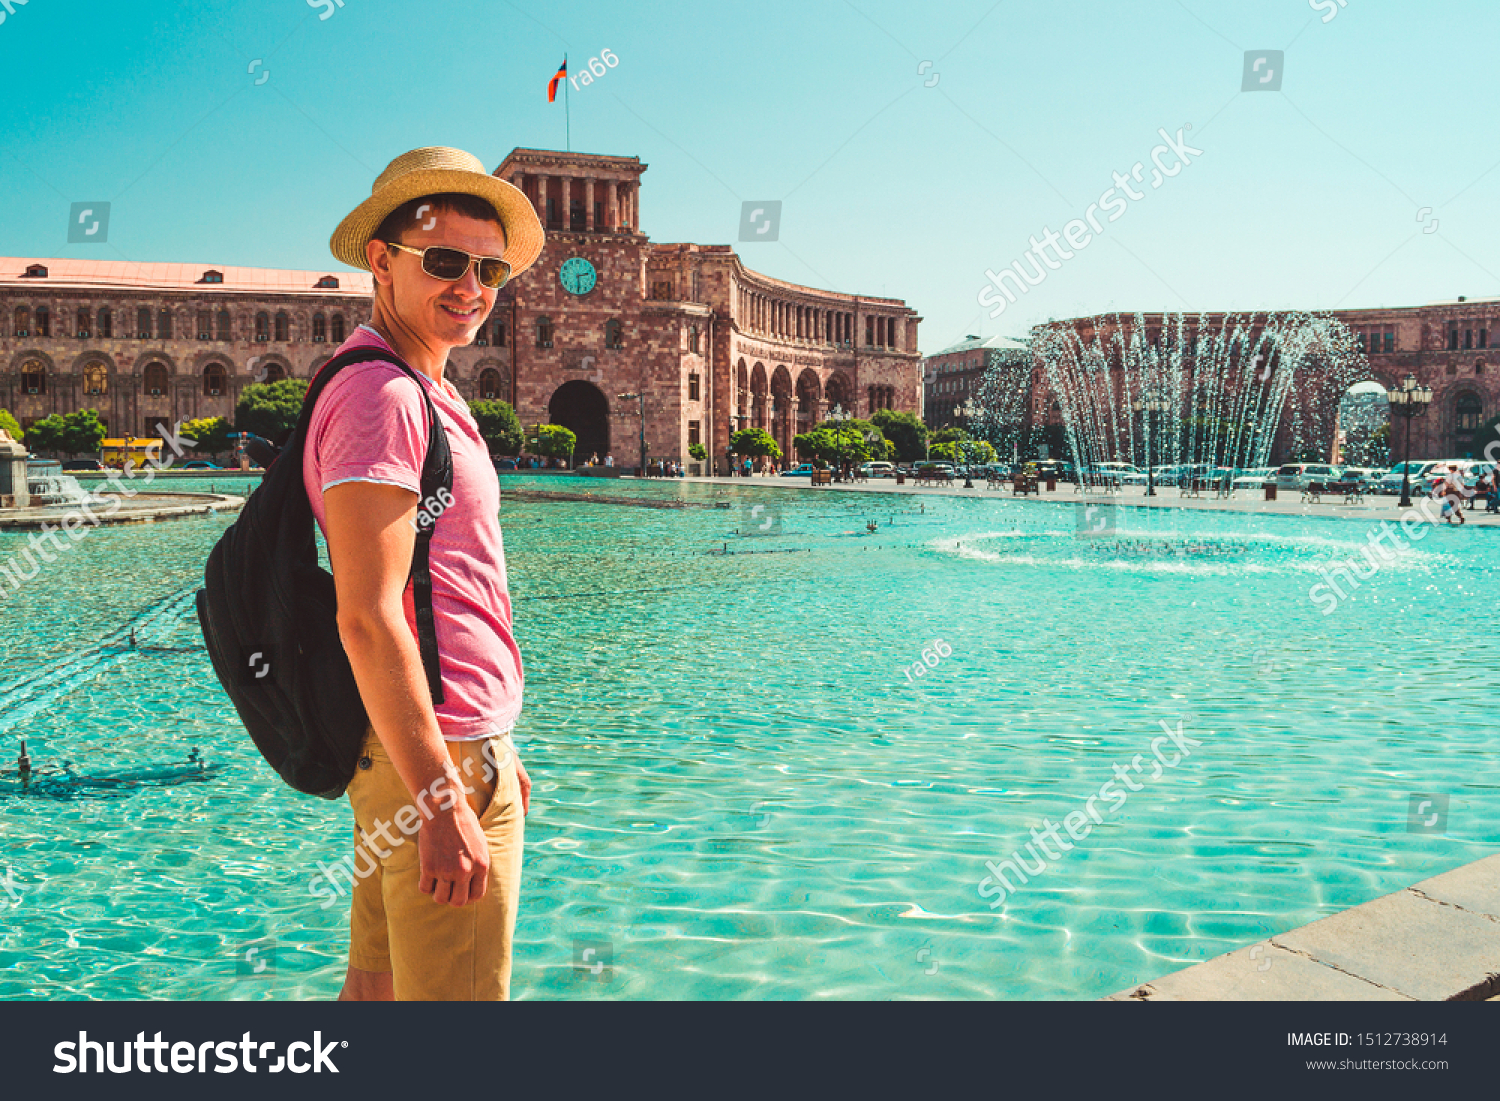 Male tourist in hat with backpack on central square of Yerevan. Caucasian adult man alone explore Armenia. Touristic architecture landmark. Sightseeing city tour. Travel and armenian tourism concept. #1512738914